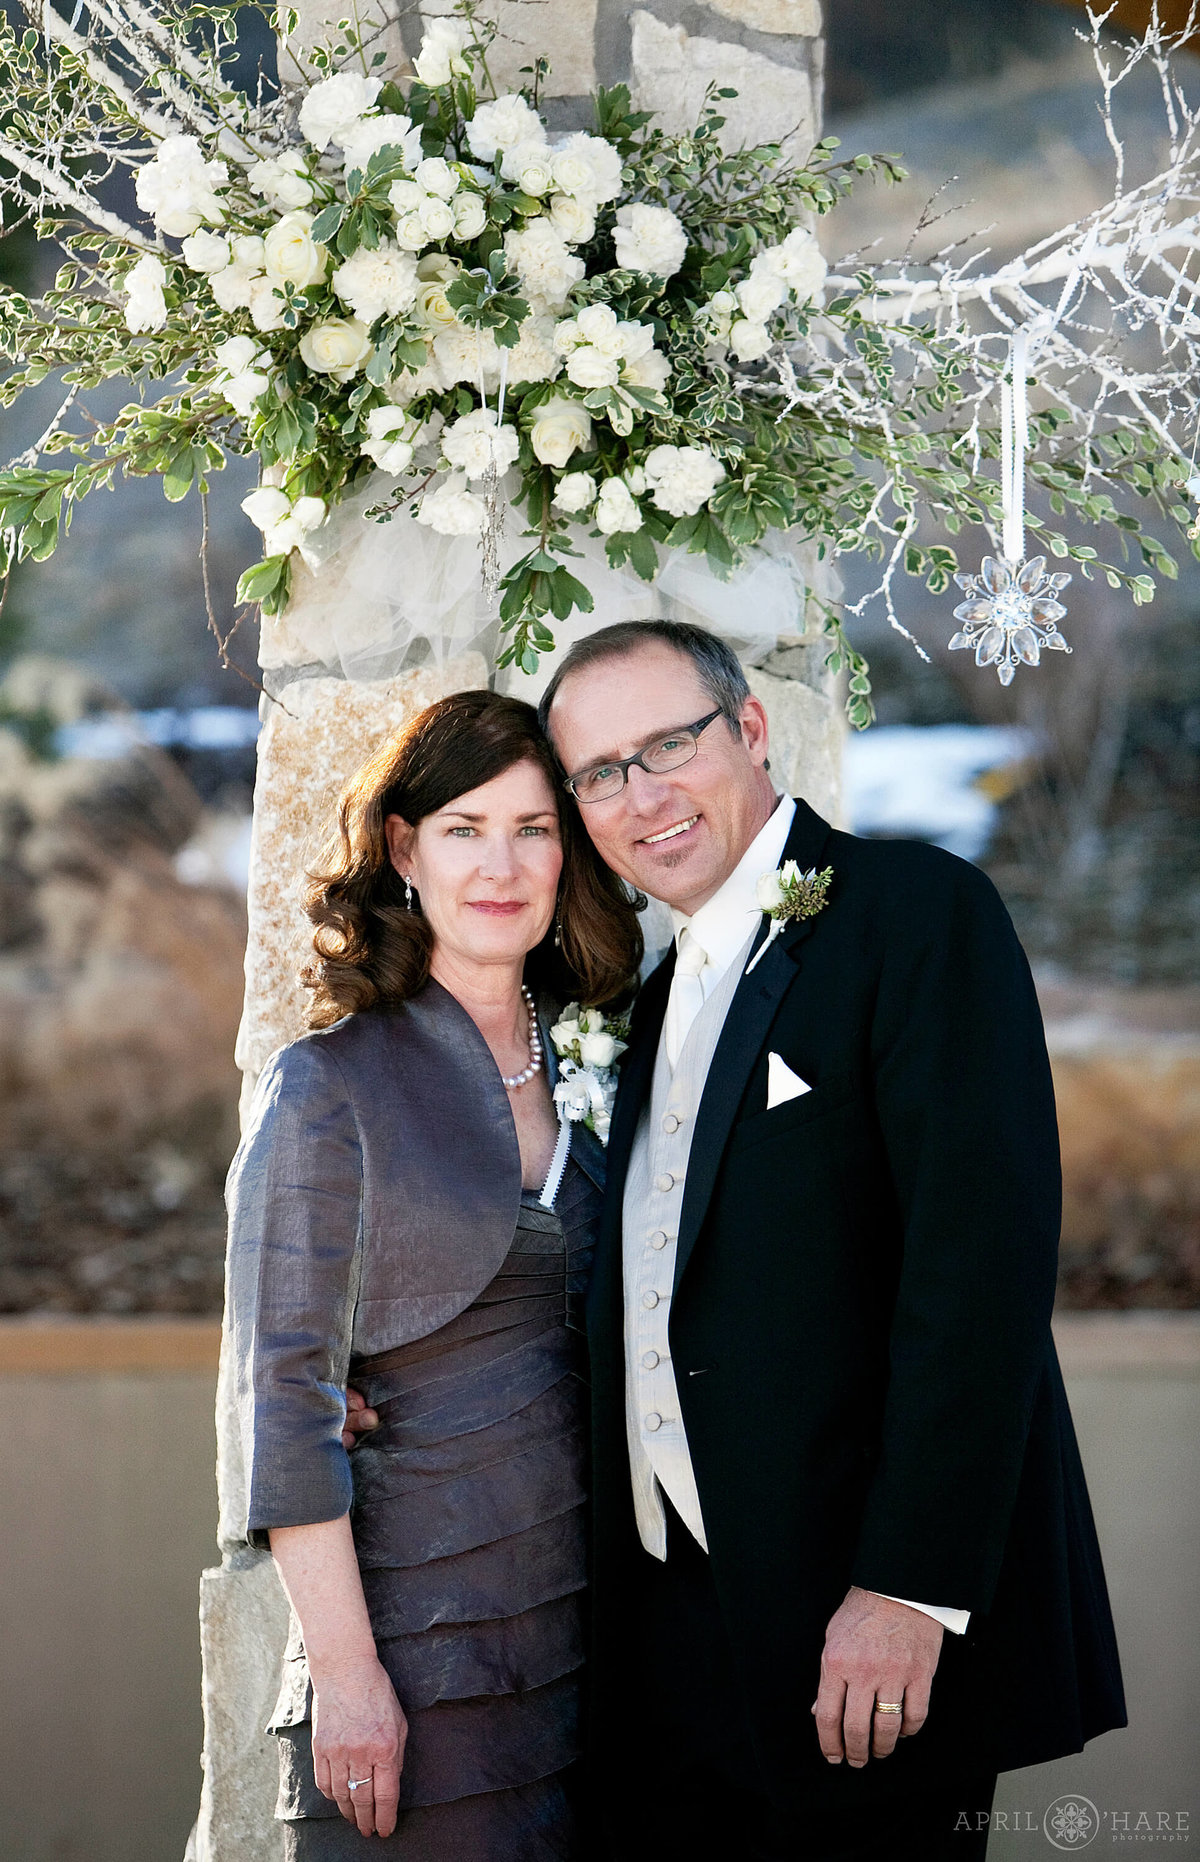 Parent Photos from a Denver Wedding at Cielo in Castle Pines Colorado